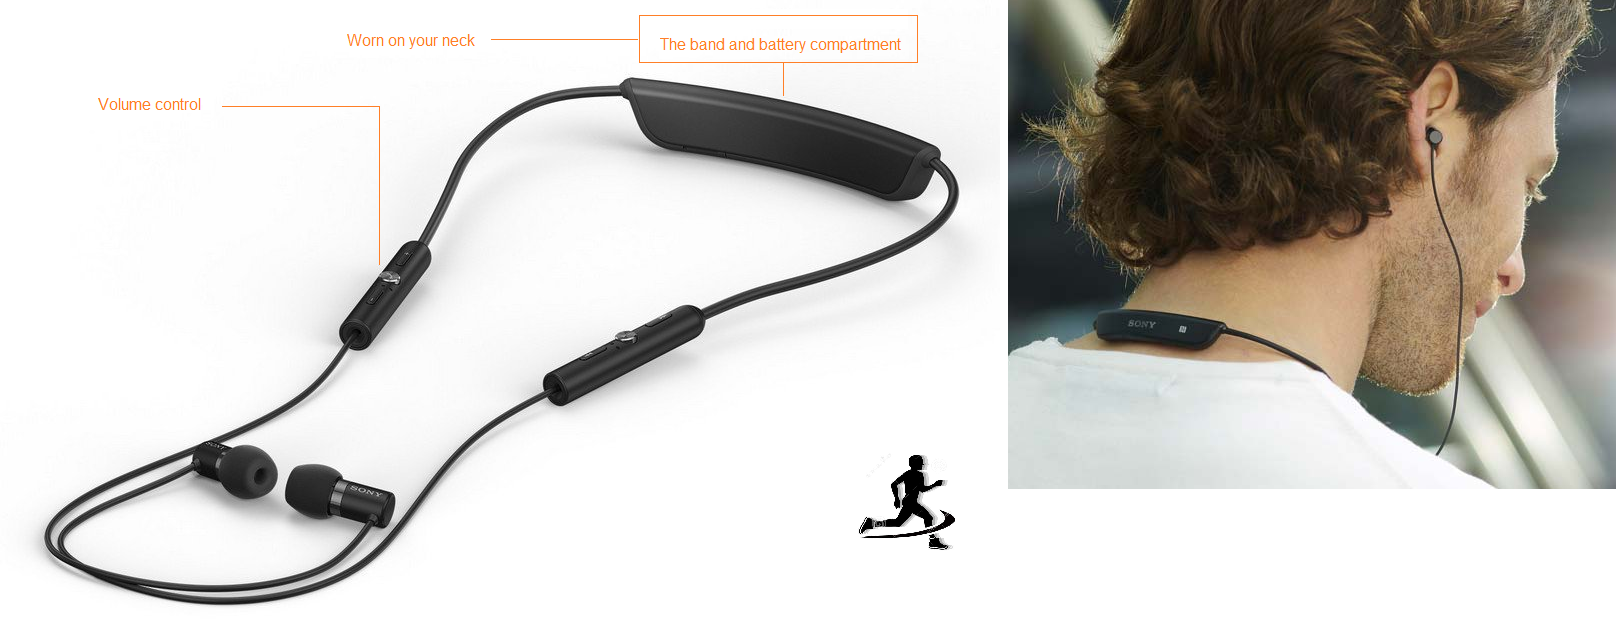 Sony SBH80 bluetooth headphones for running | Best earbuds